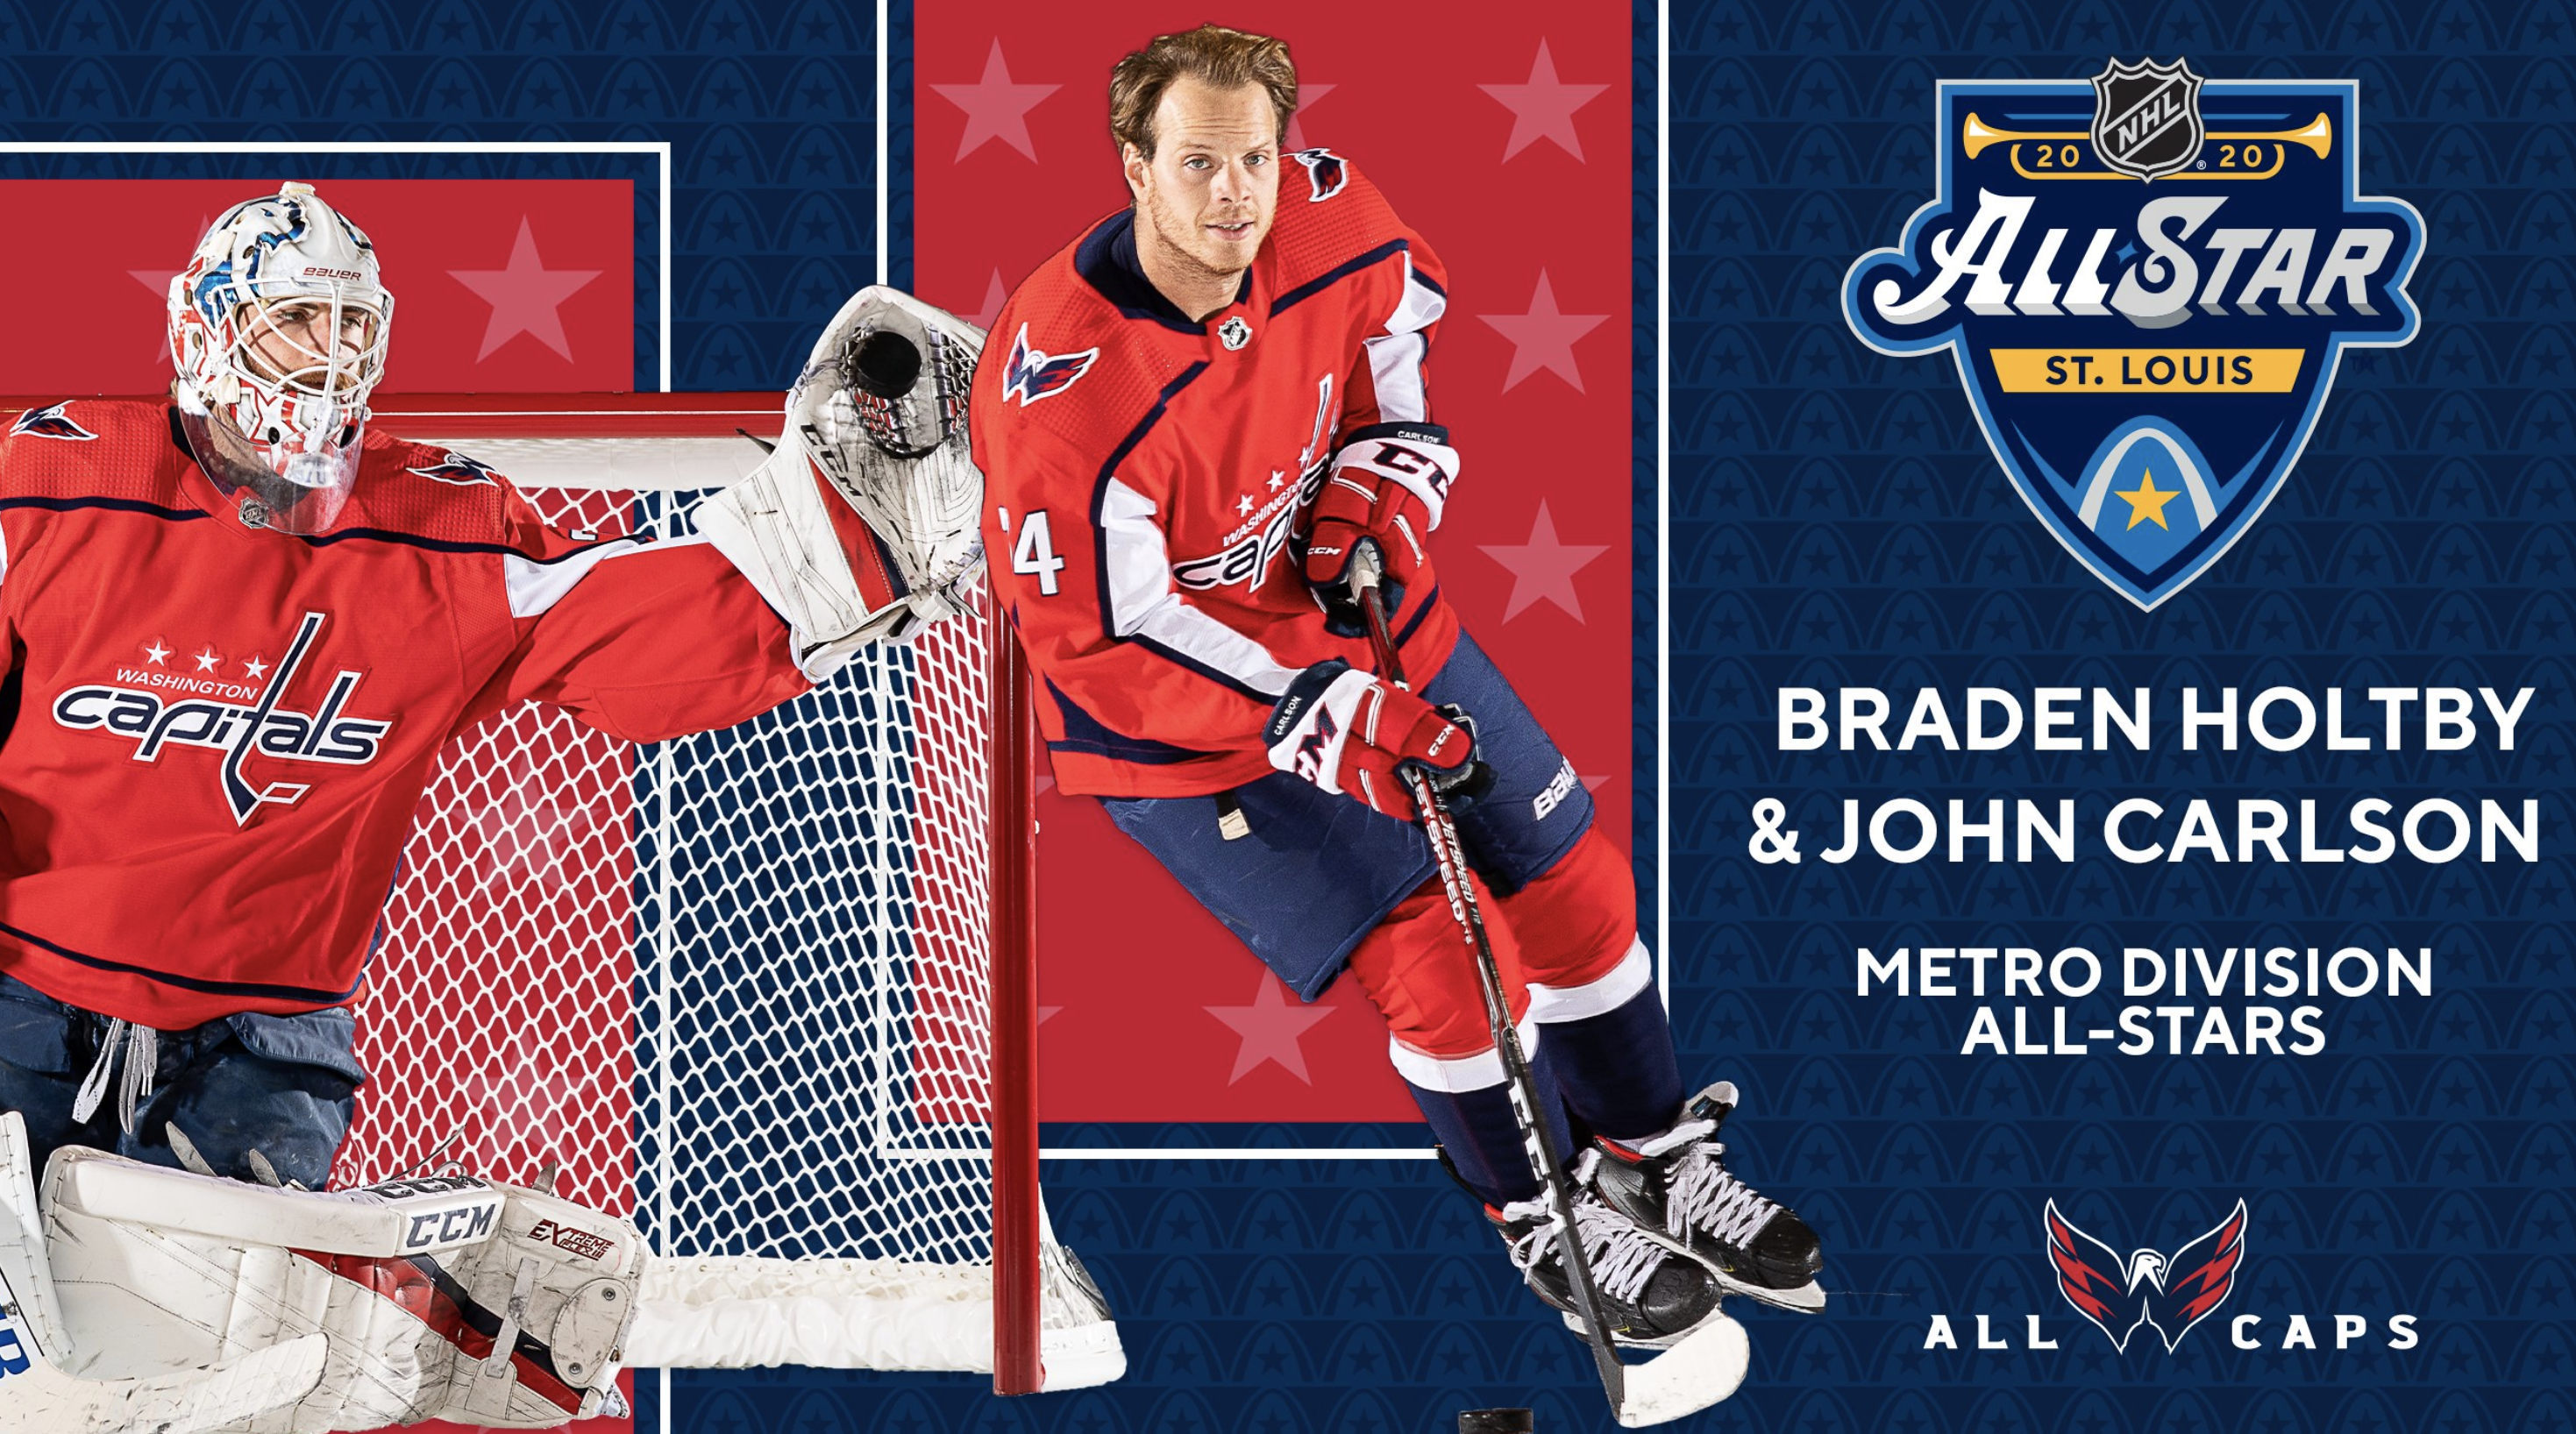 Capitals John Carlson And Braden Holtby Selected For 2020 Nhl All Star Game In St Louis Nova Caps